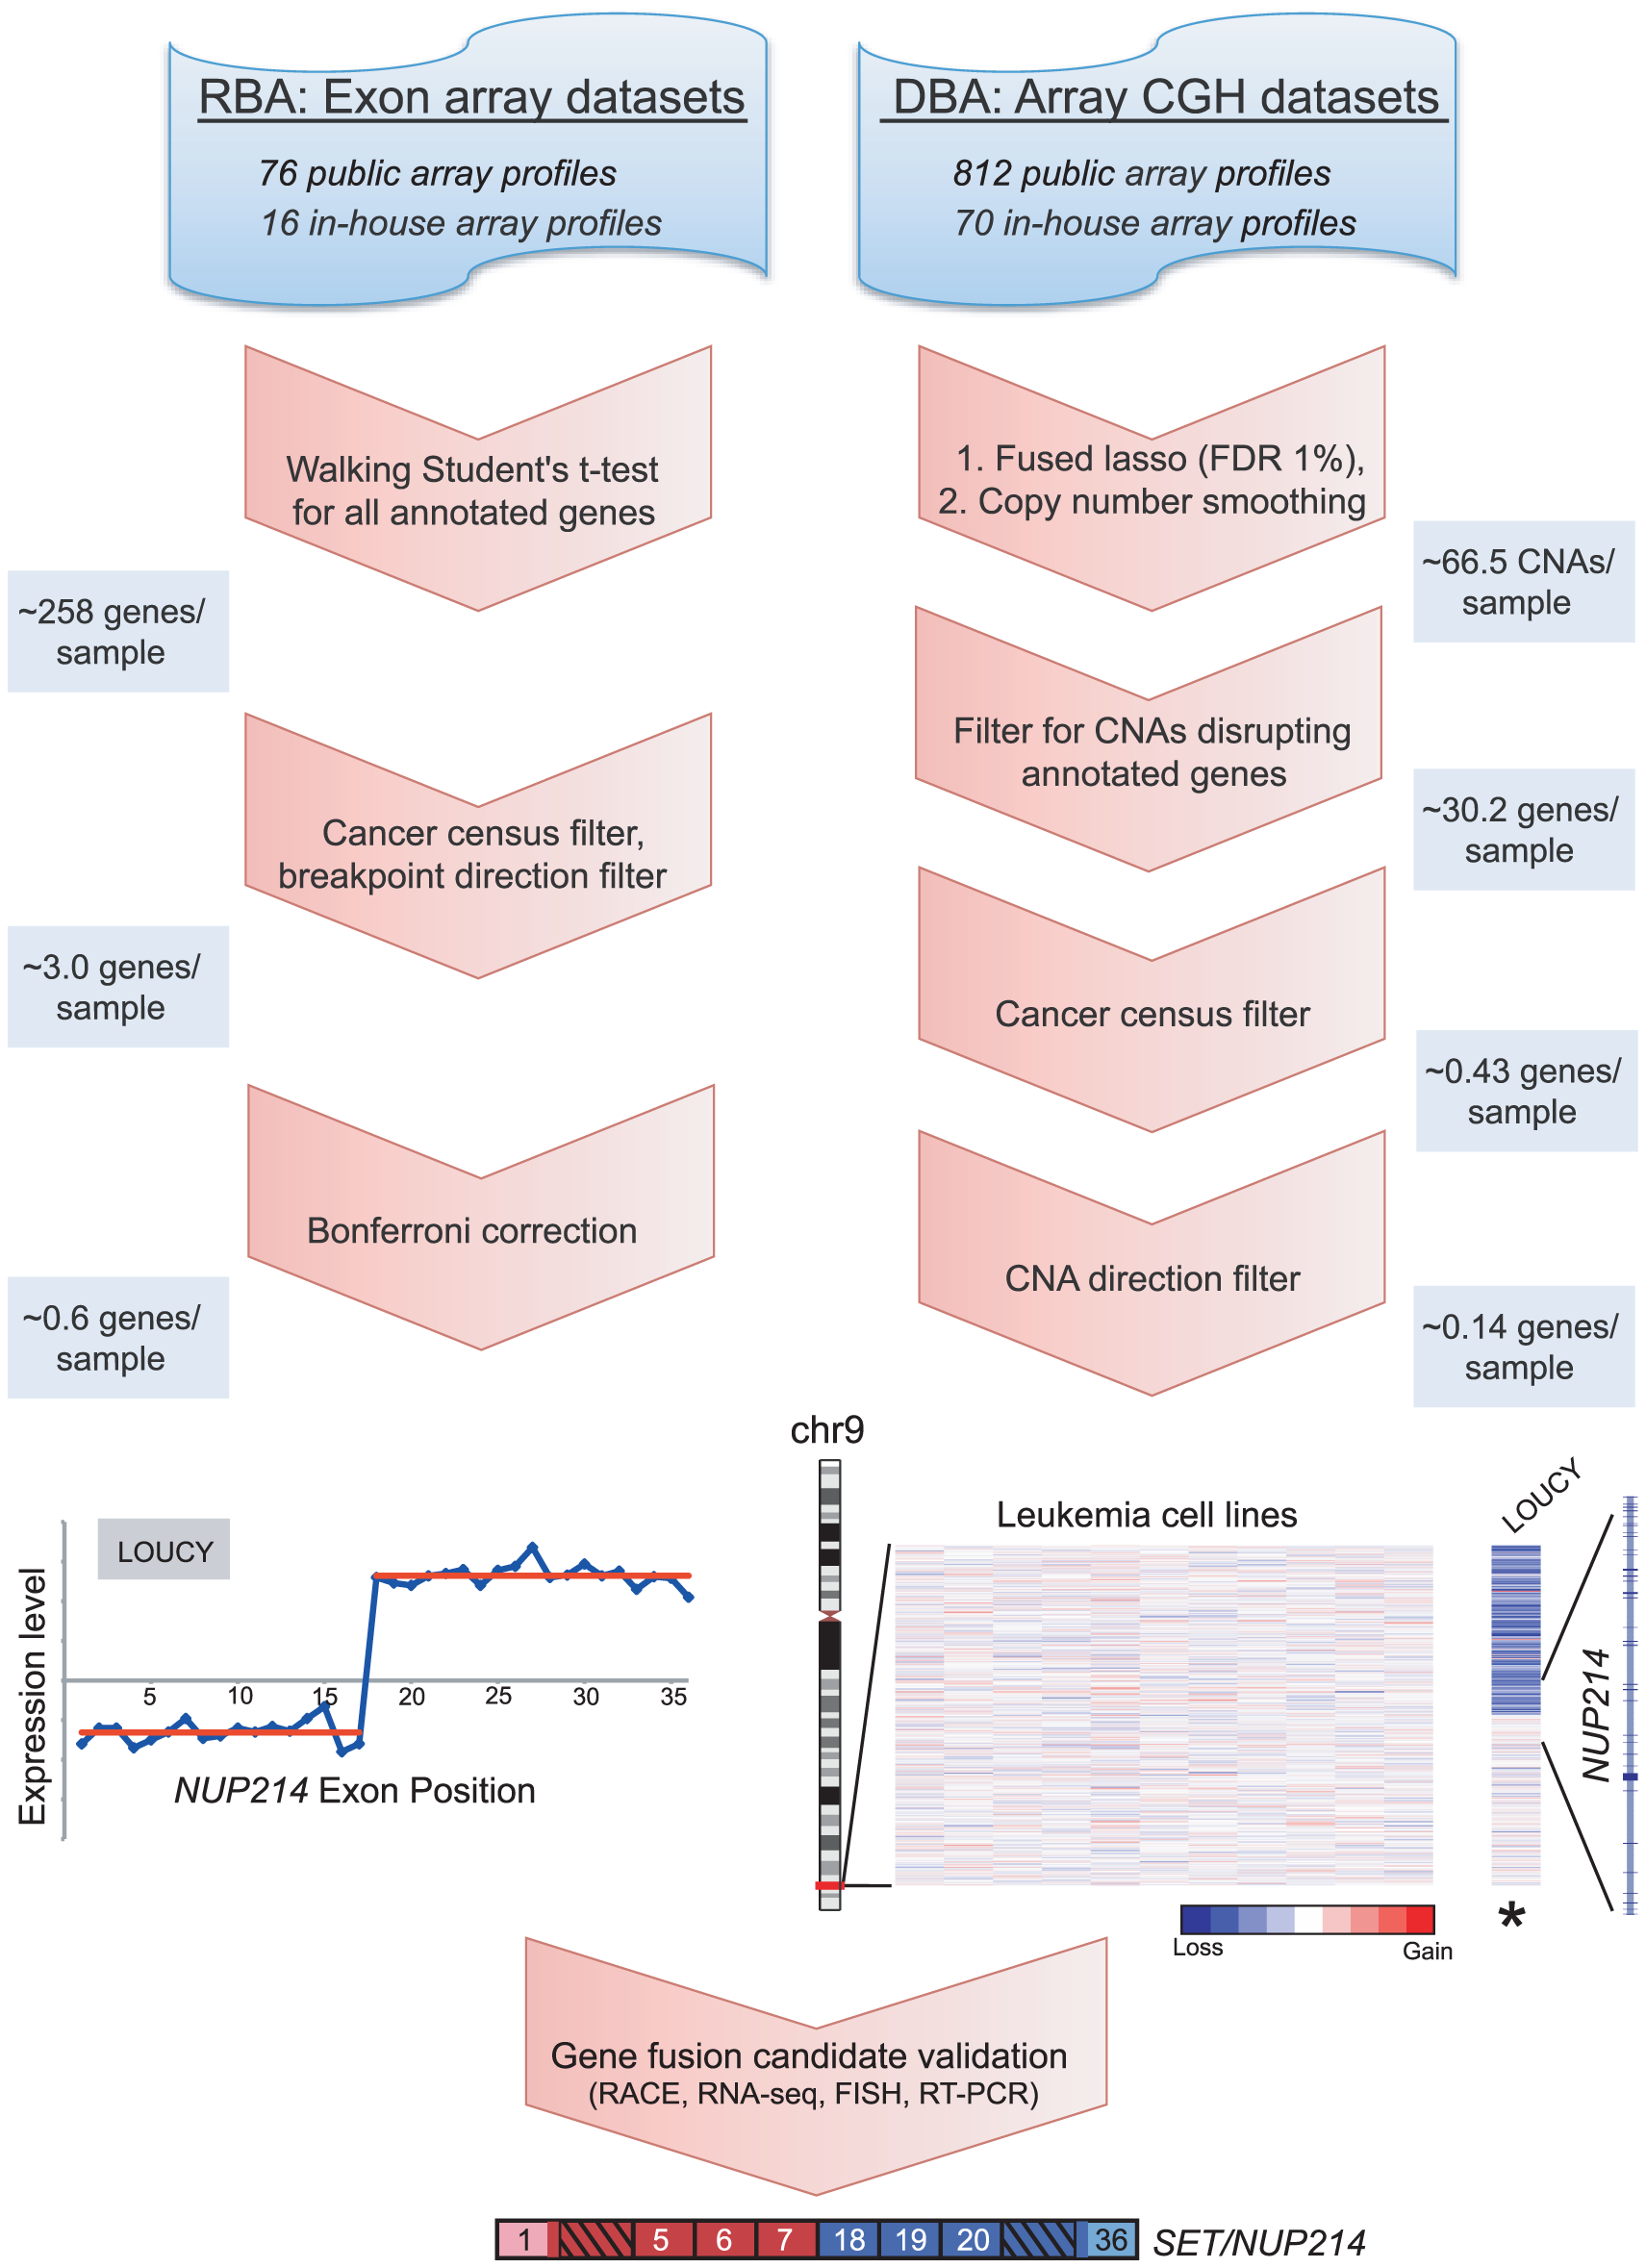 Breakpoint analysis for discovering novel cancer gene rearrangements.